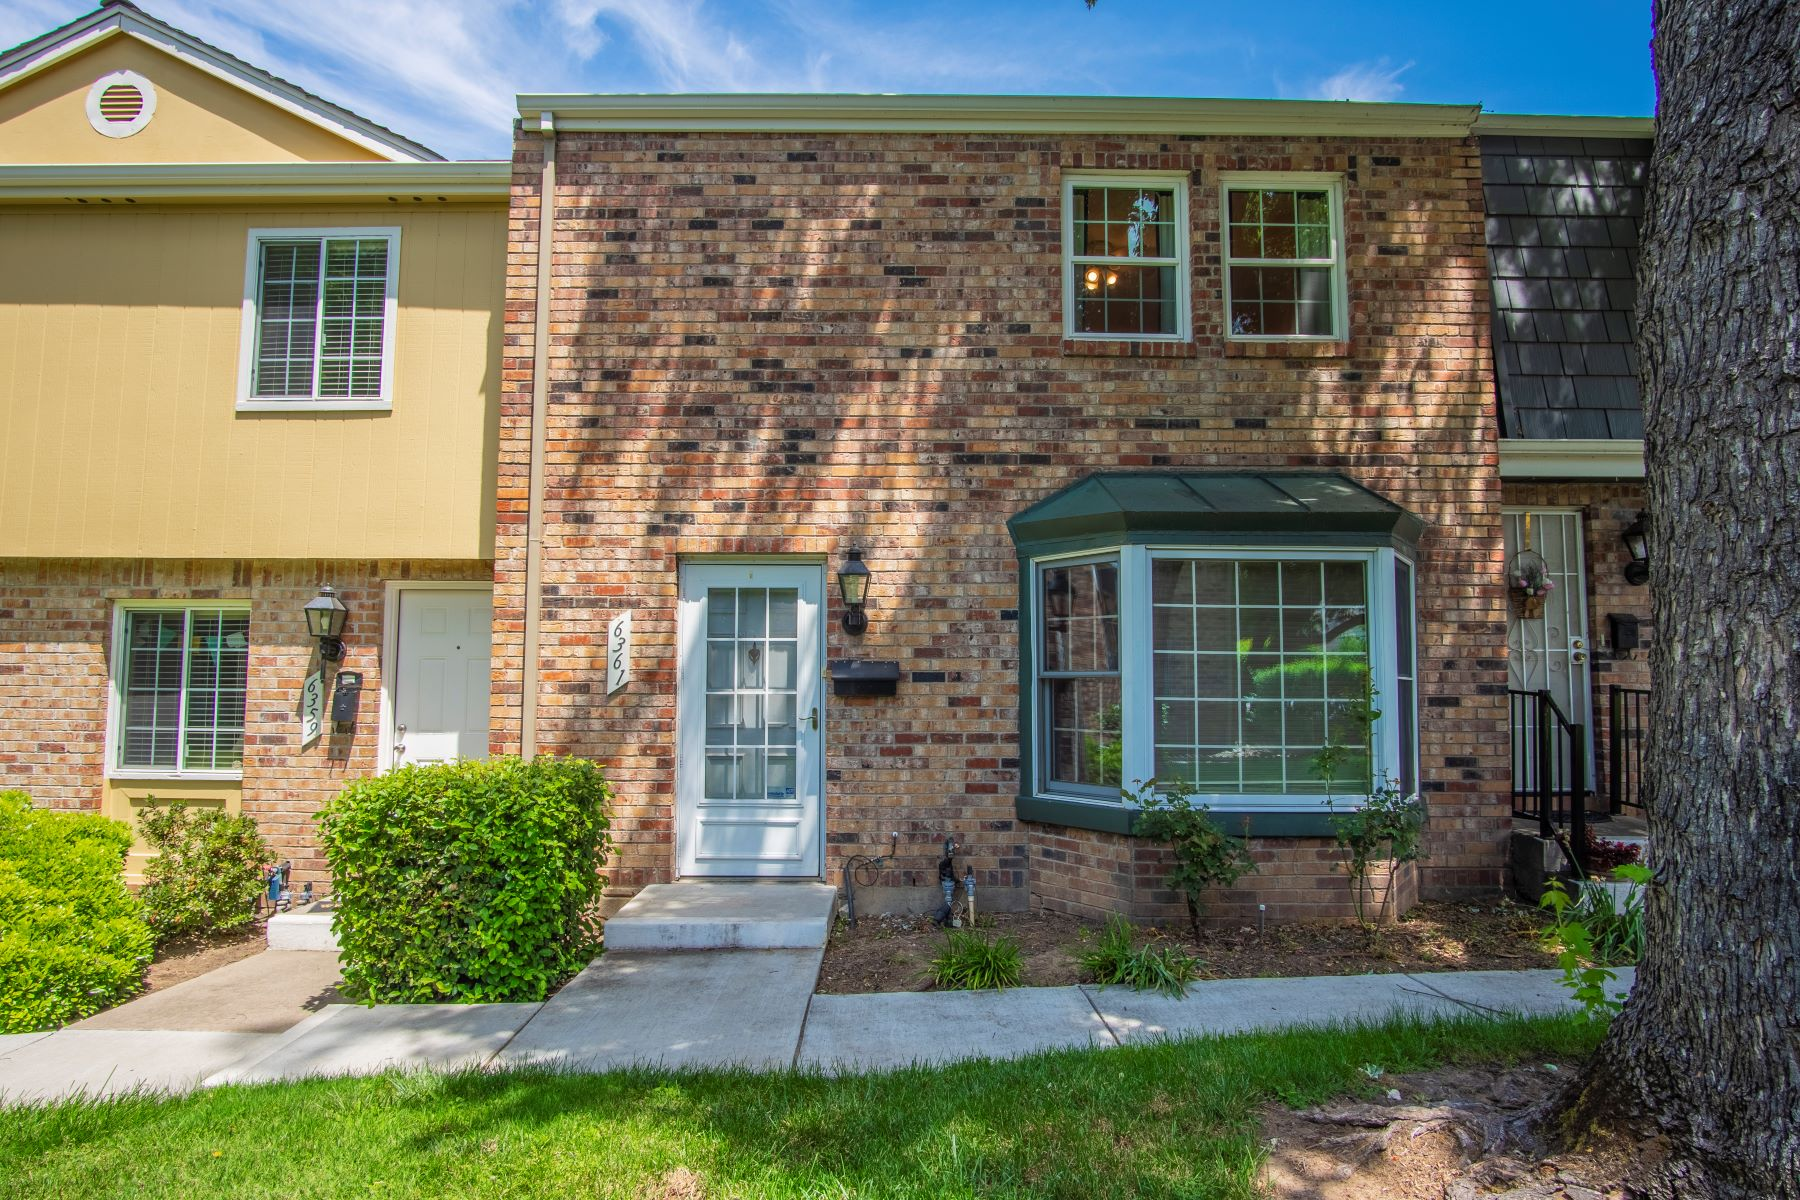 townhouses for Active at 6361 Wexford Circle, Citrus Heights, CA 95621 6361 Wexford Circle Citrus Heights, California 95621 United States